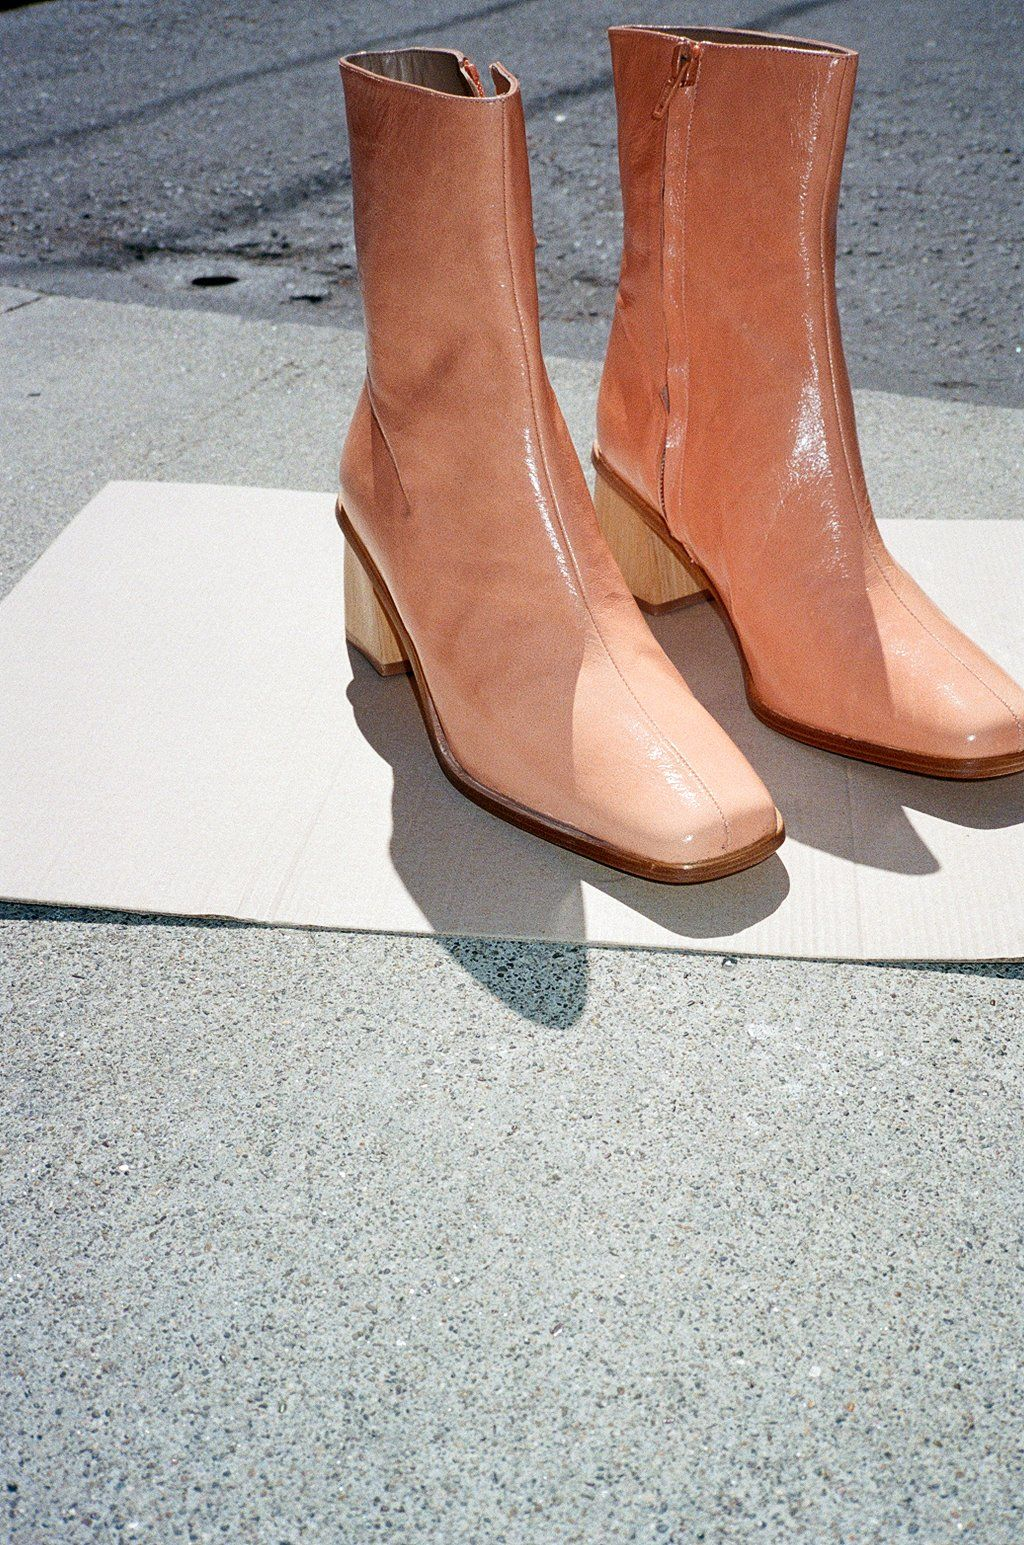 7a3b999473d Emilia Boot - Light Apricot Brown Wedges Outfit